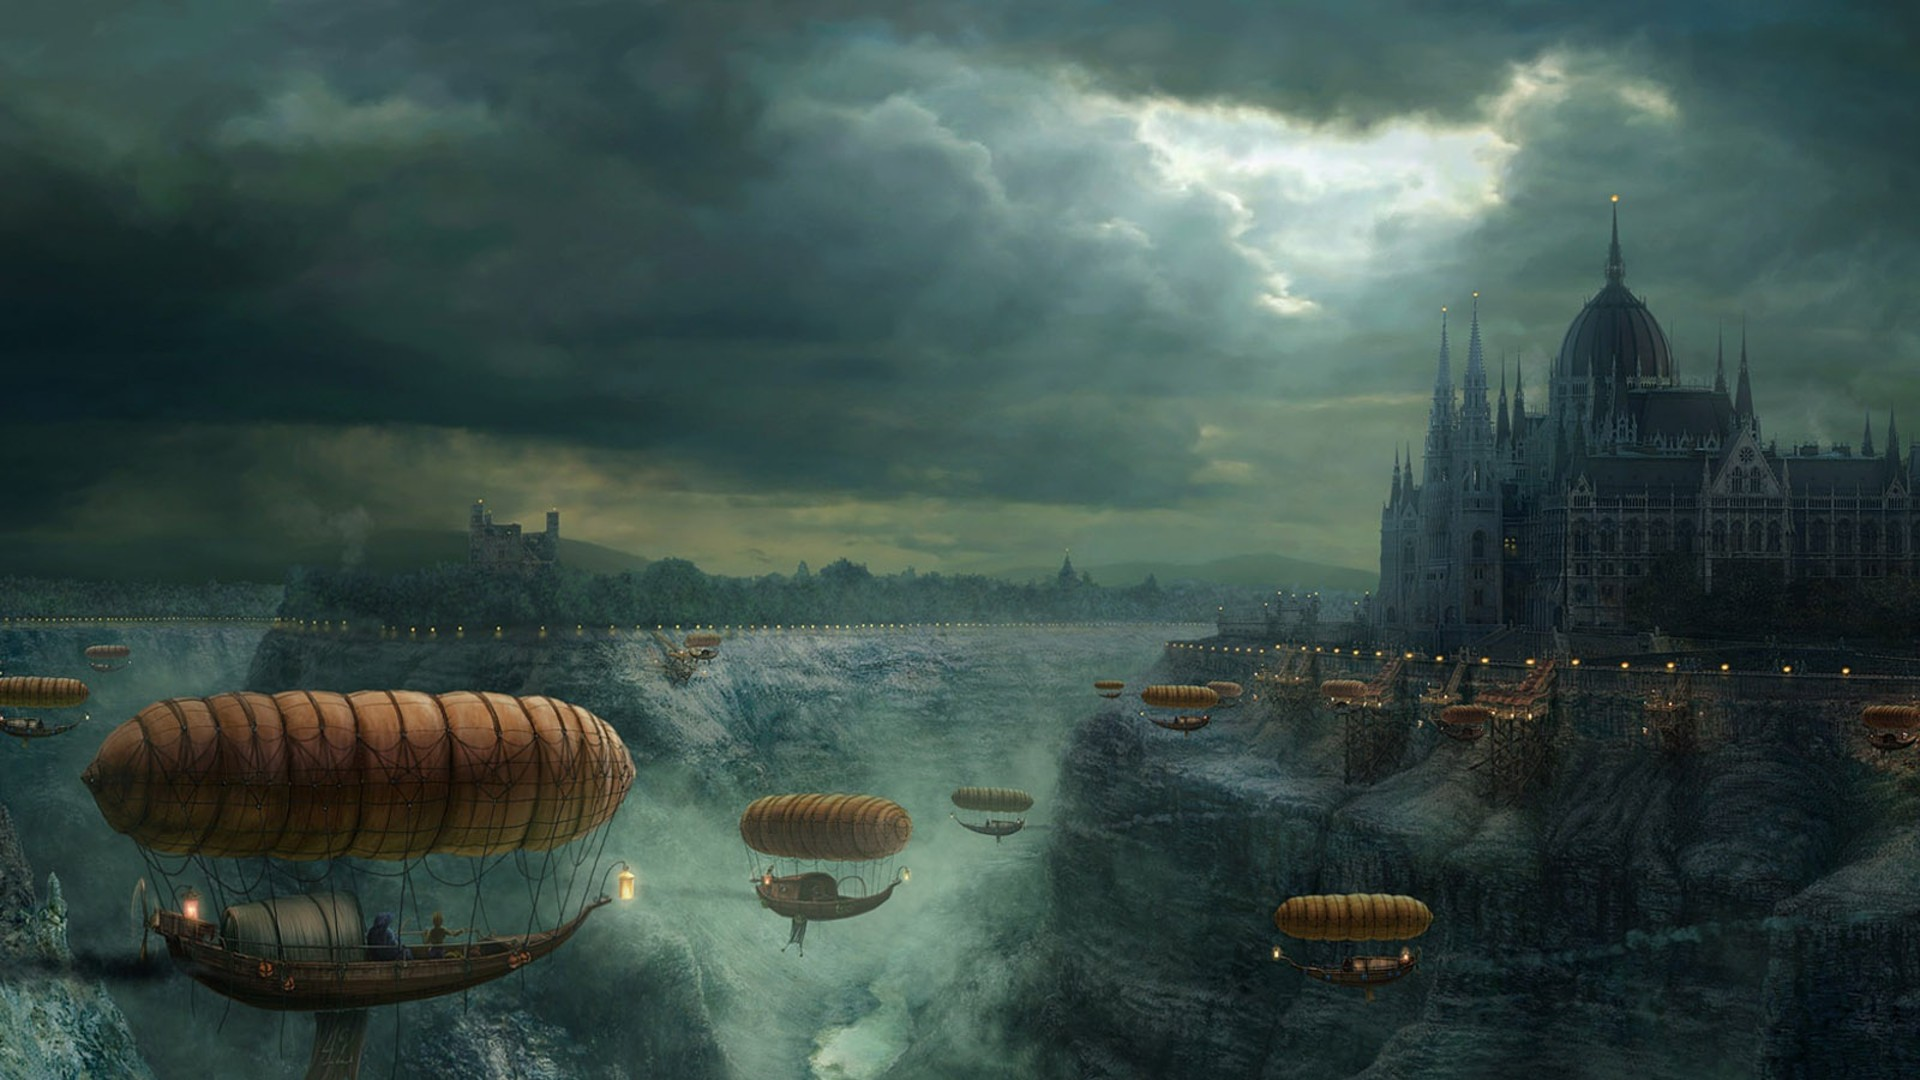 Res: 1920x1080, Wallpapers hd steampunk best.